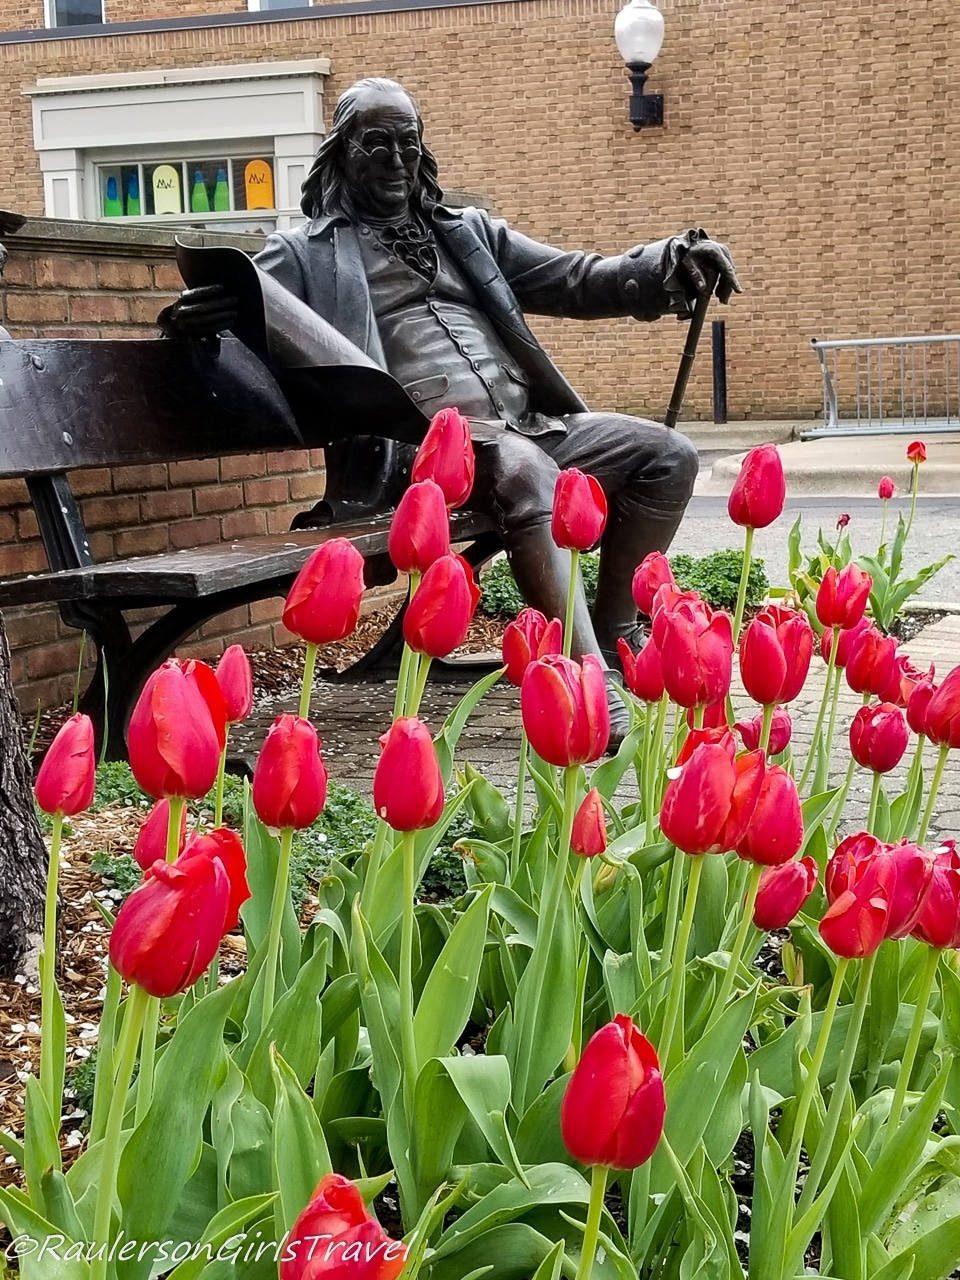 Red tulips in front of Ben Franklin statue